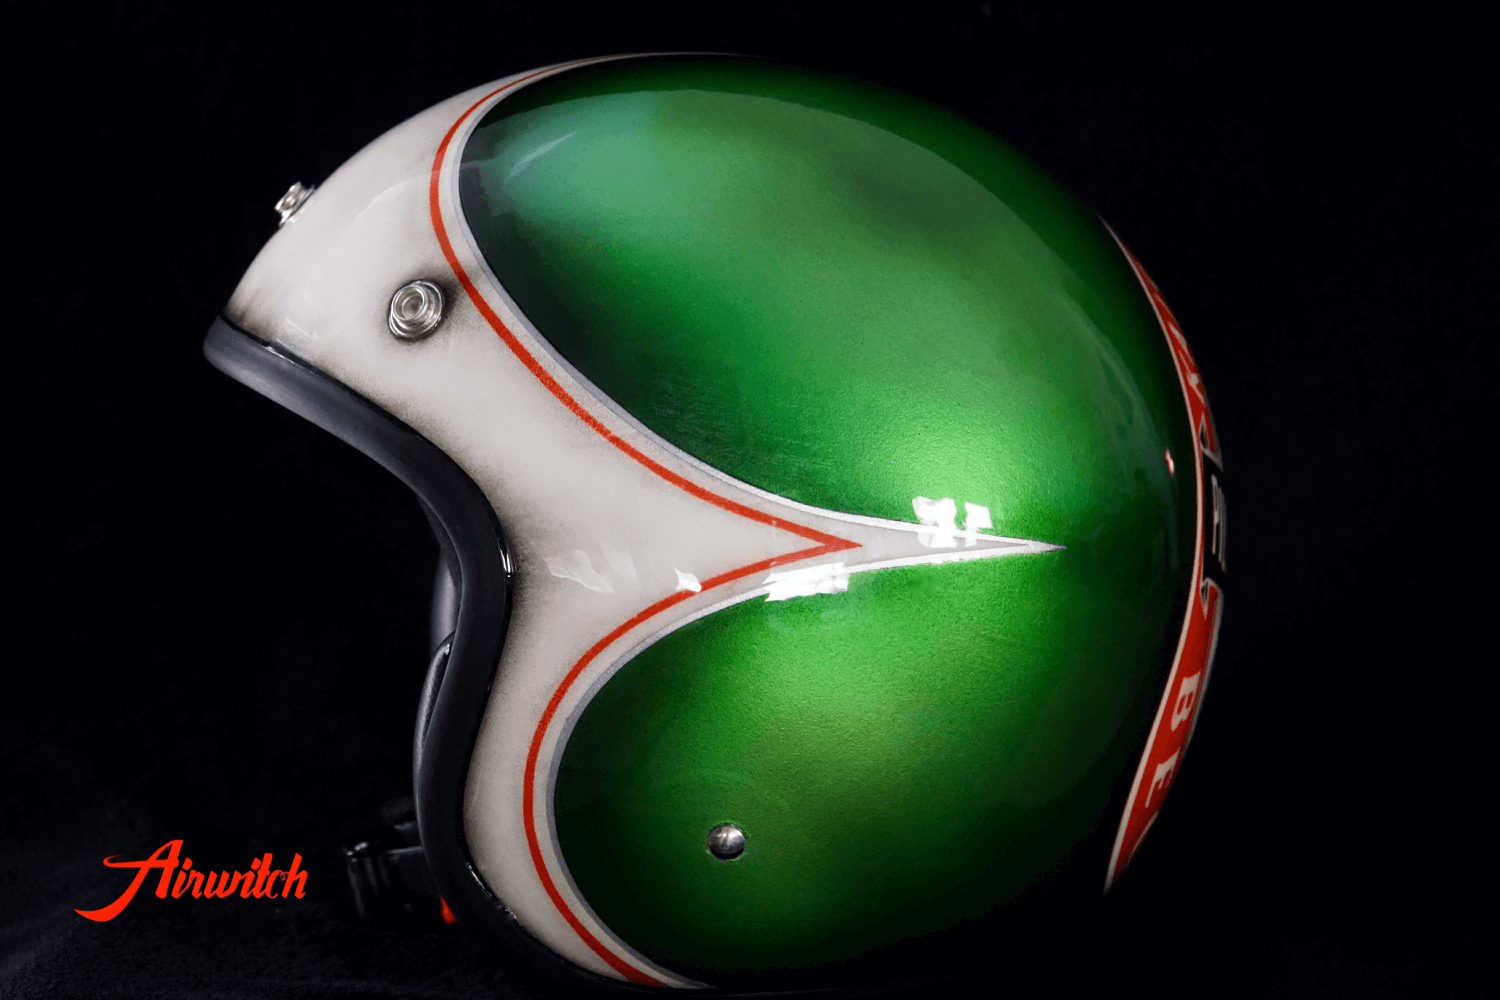 Custom Paint Helm mit Retro Used Airbrush und Bierettikett in Candygrün